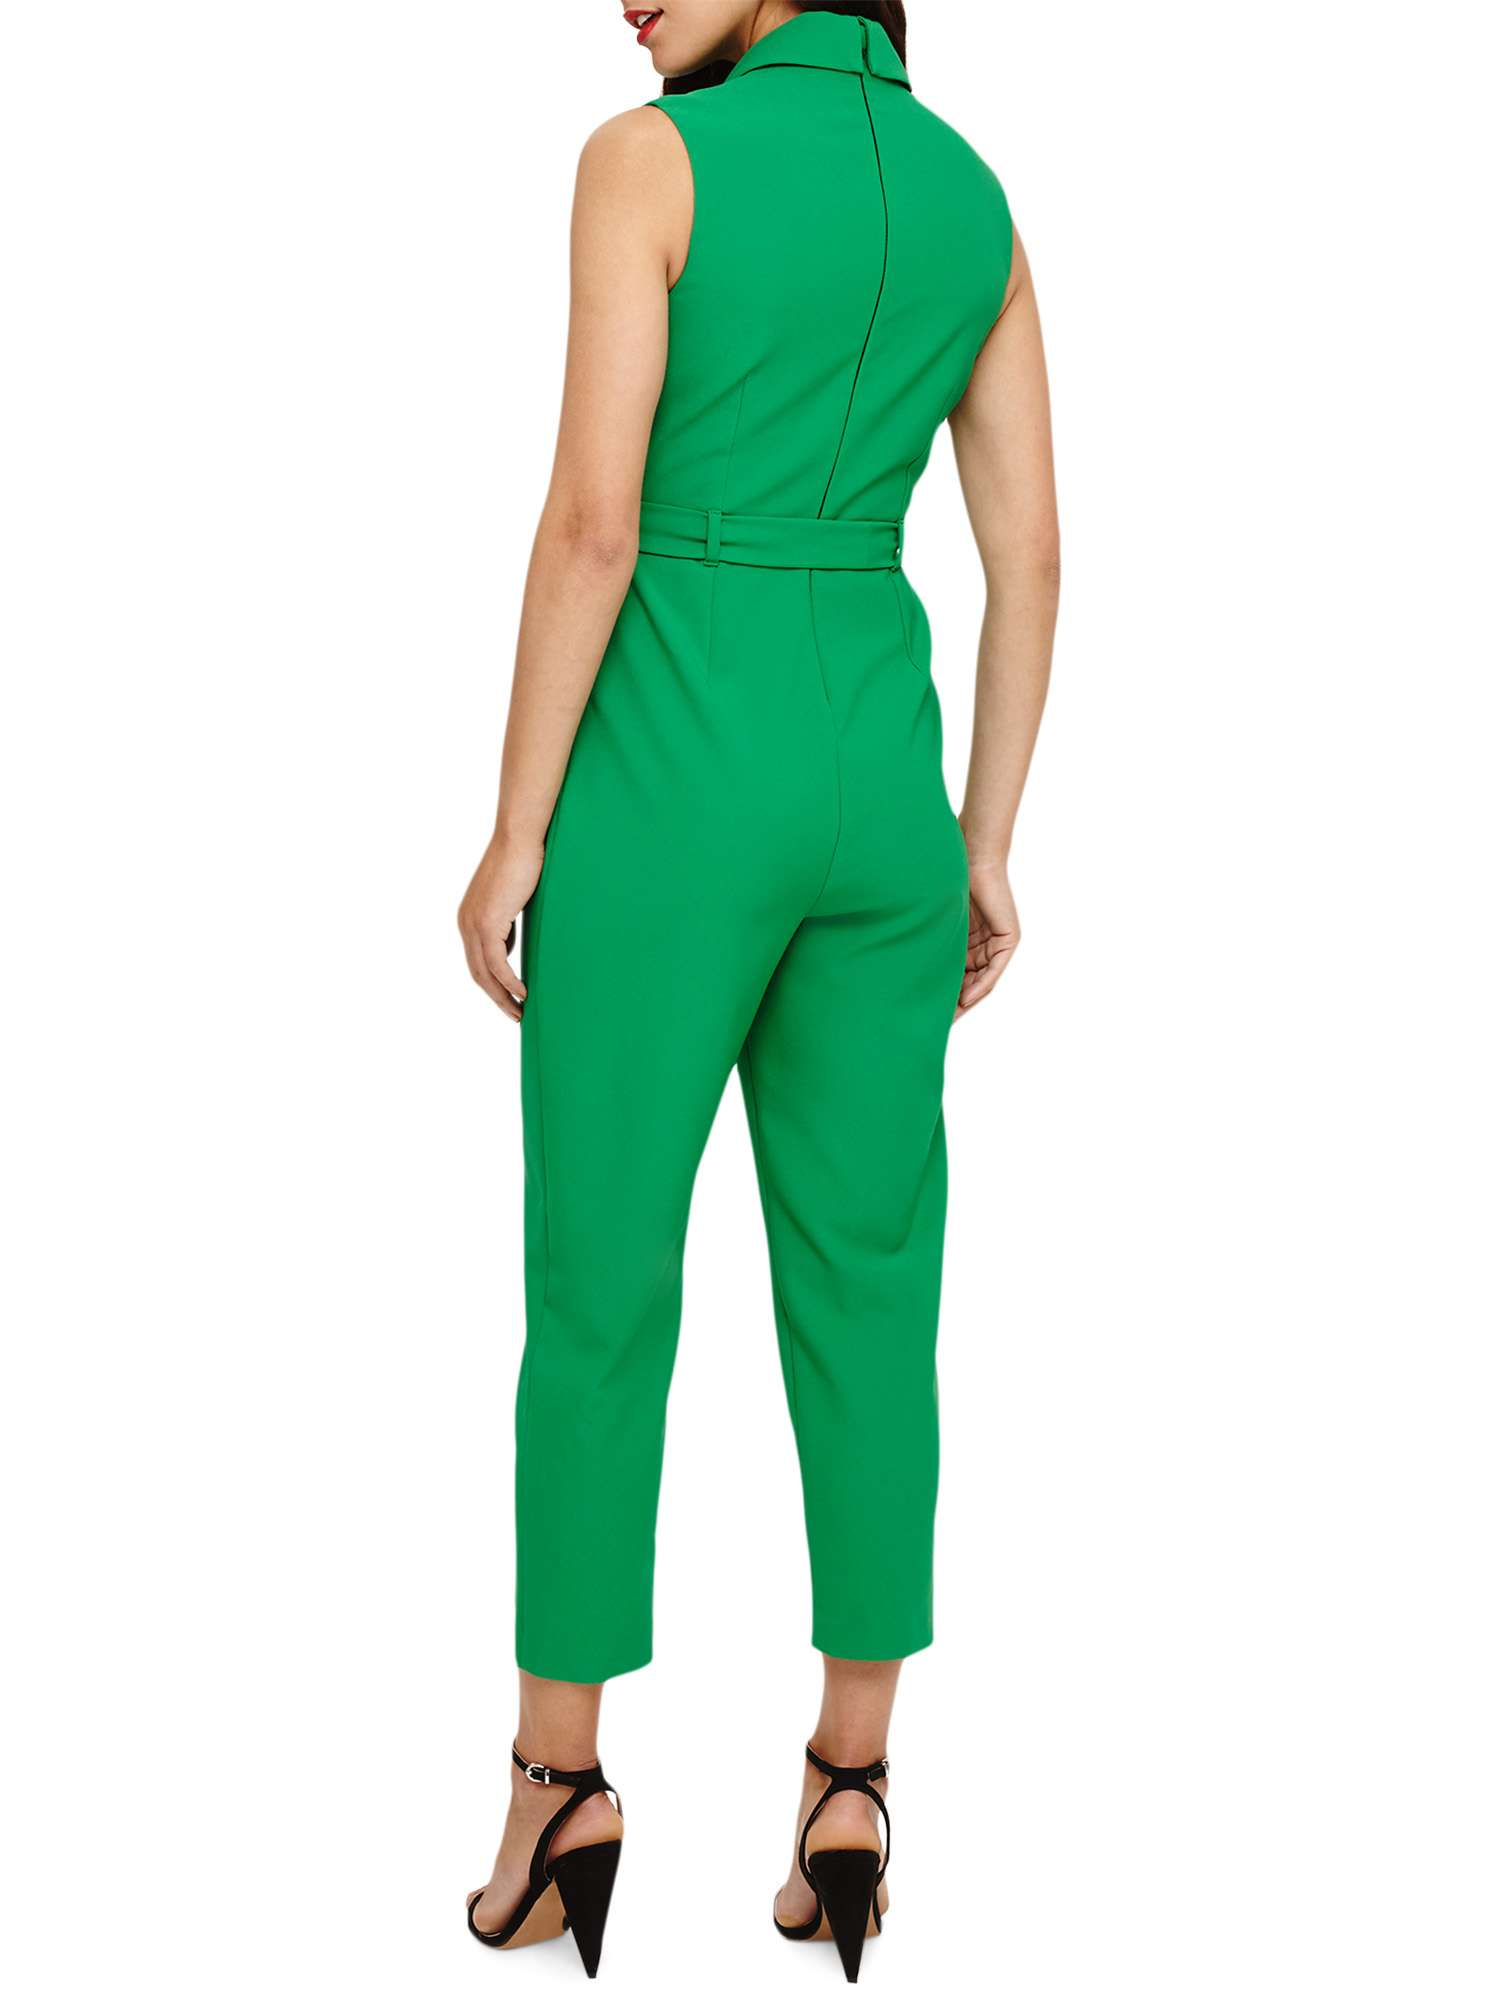 Wrap Jumpsuit Felicia Phase Wrap Jumpsuit Eight Eight Phase Wrap Phase Eight Jumpsuit Felicia Felicia aY7dqaw